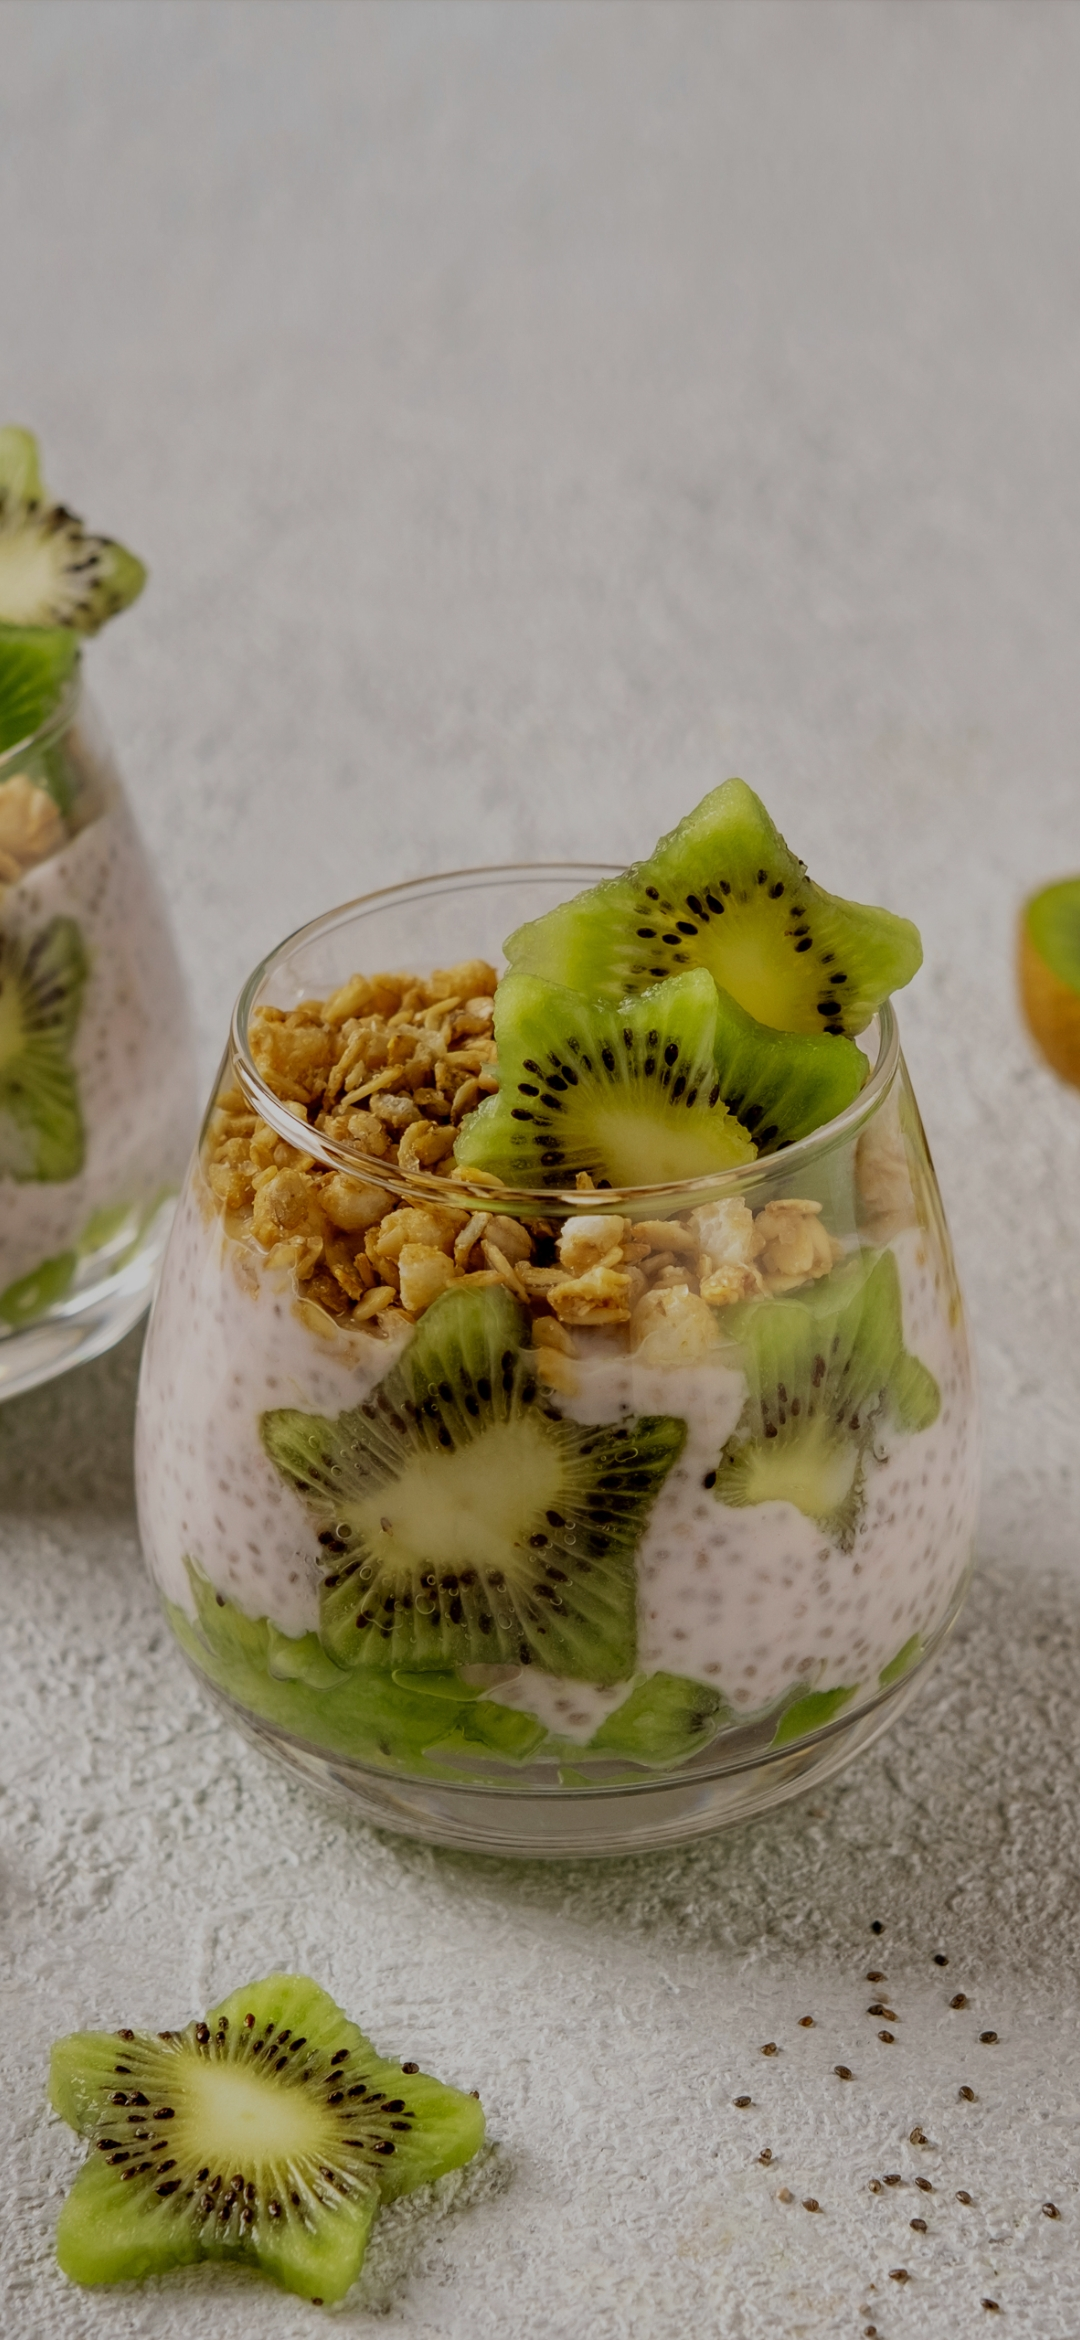 Kiwi fruit in the cup